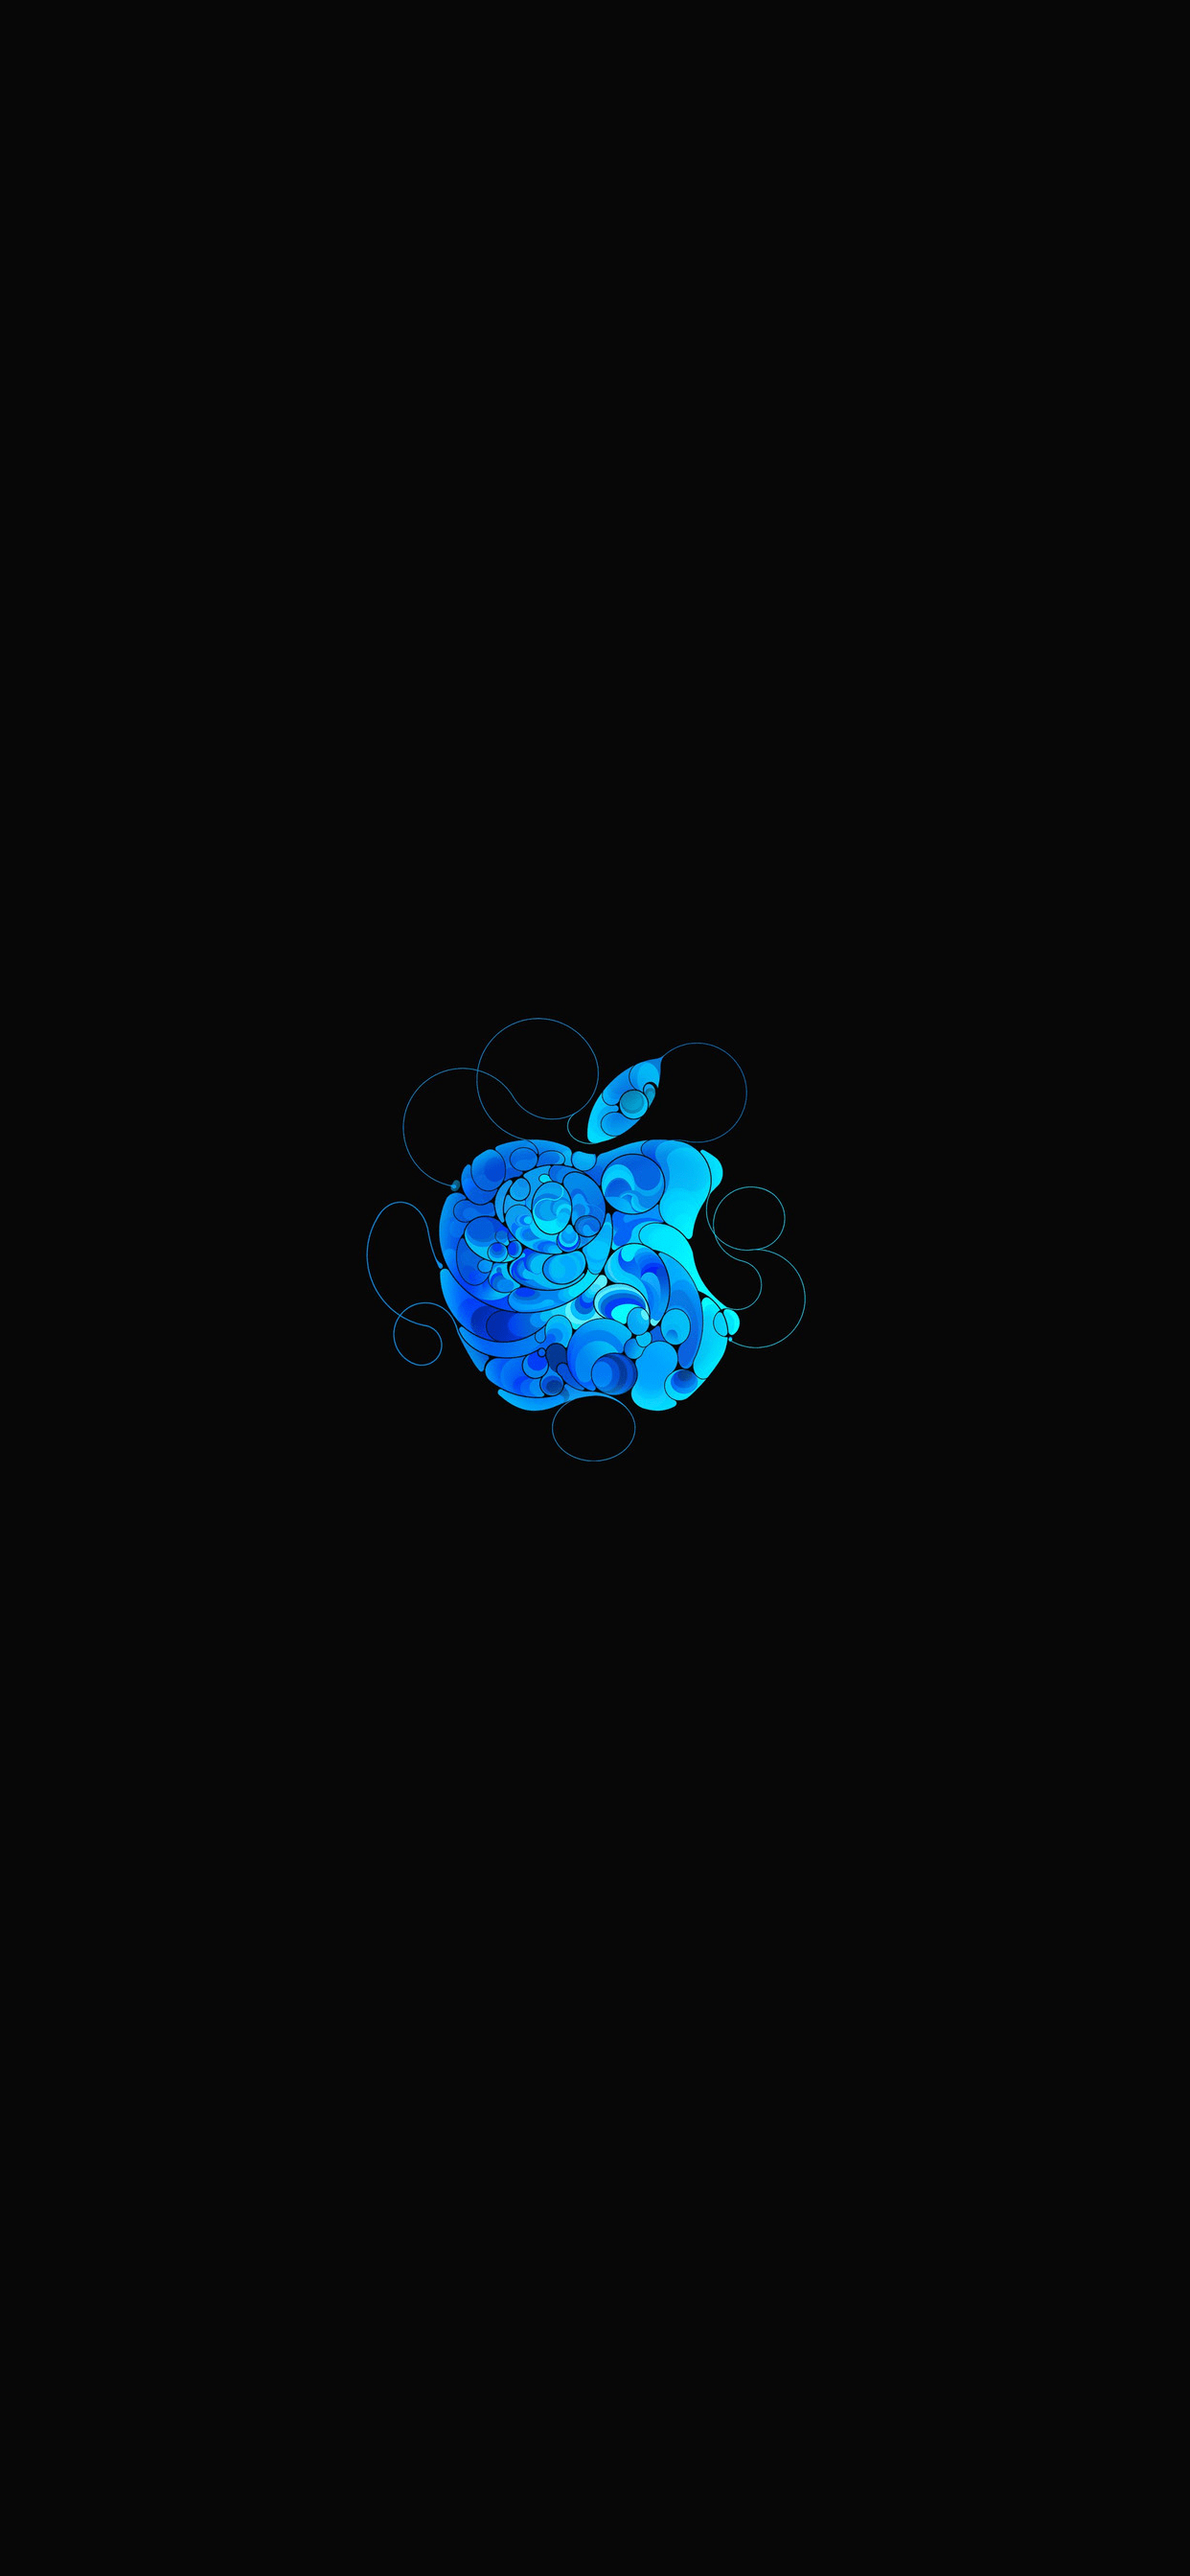 iPhone wallpaper apple logo 23 Apple logo